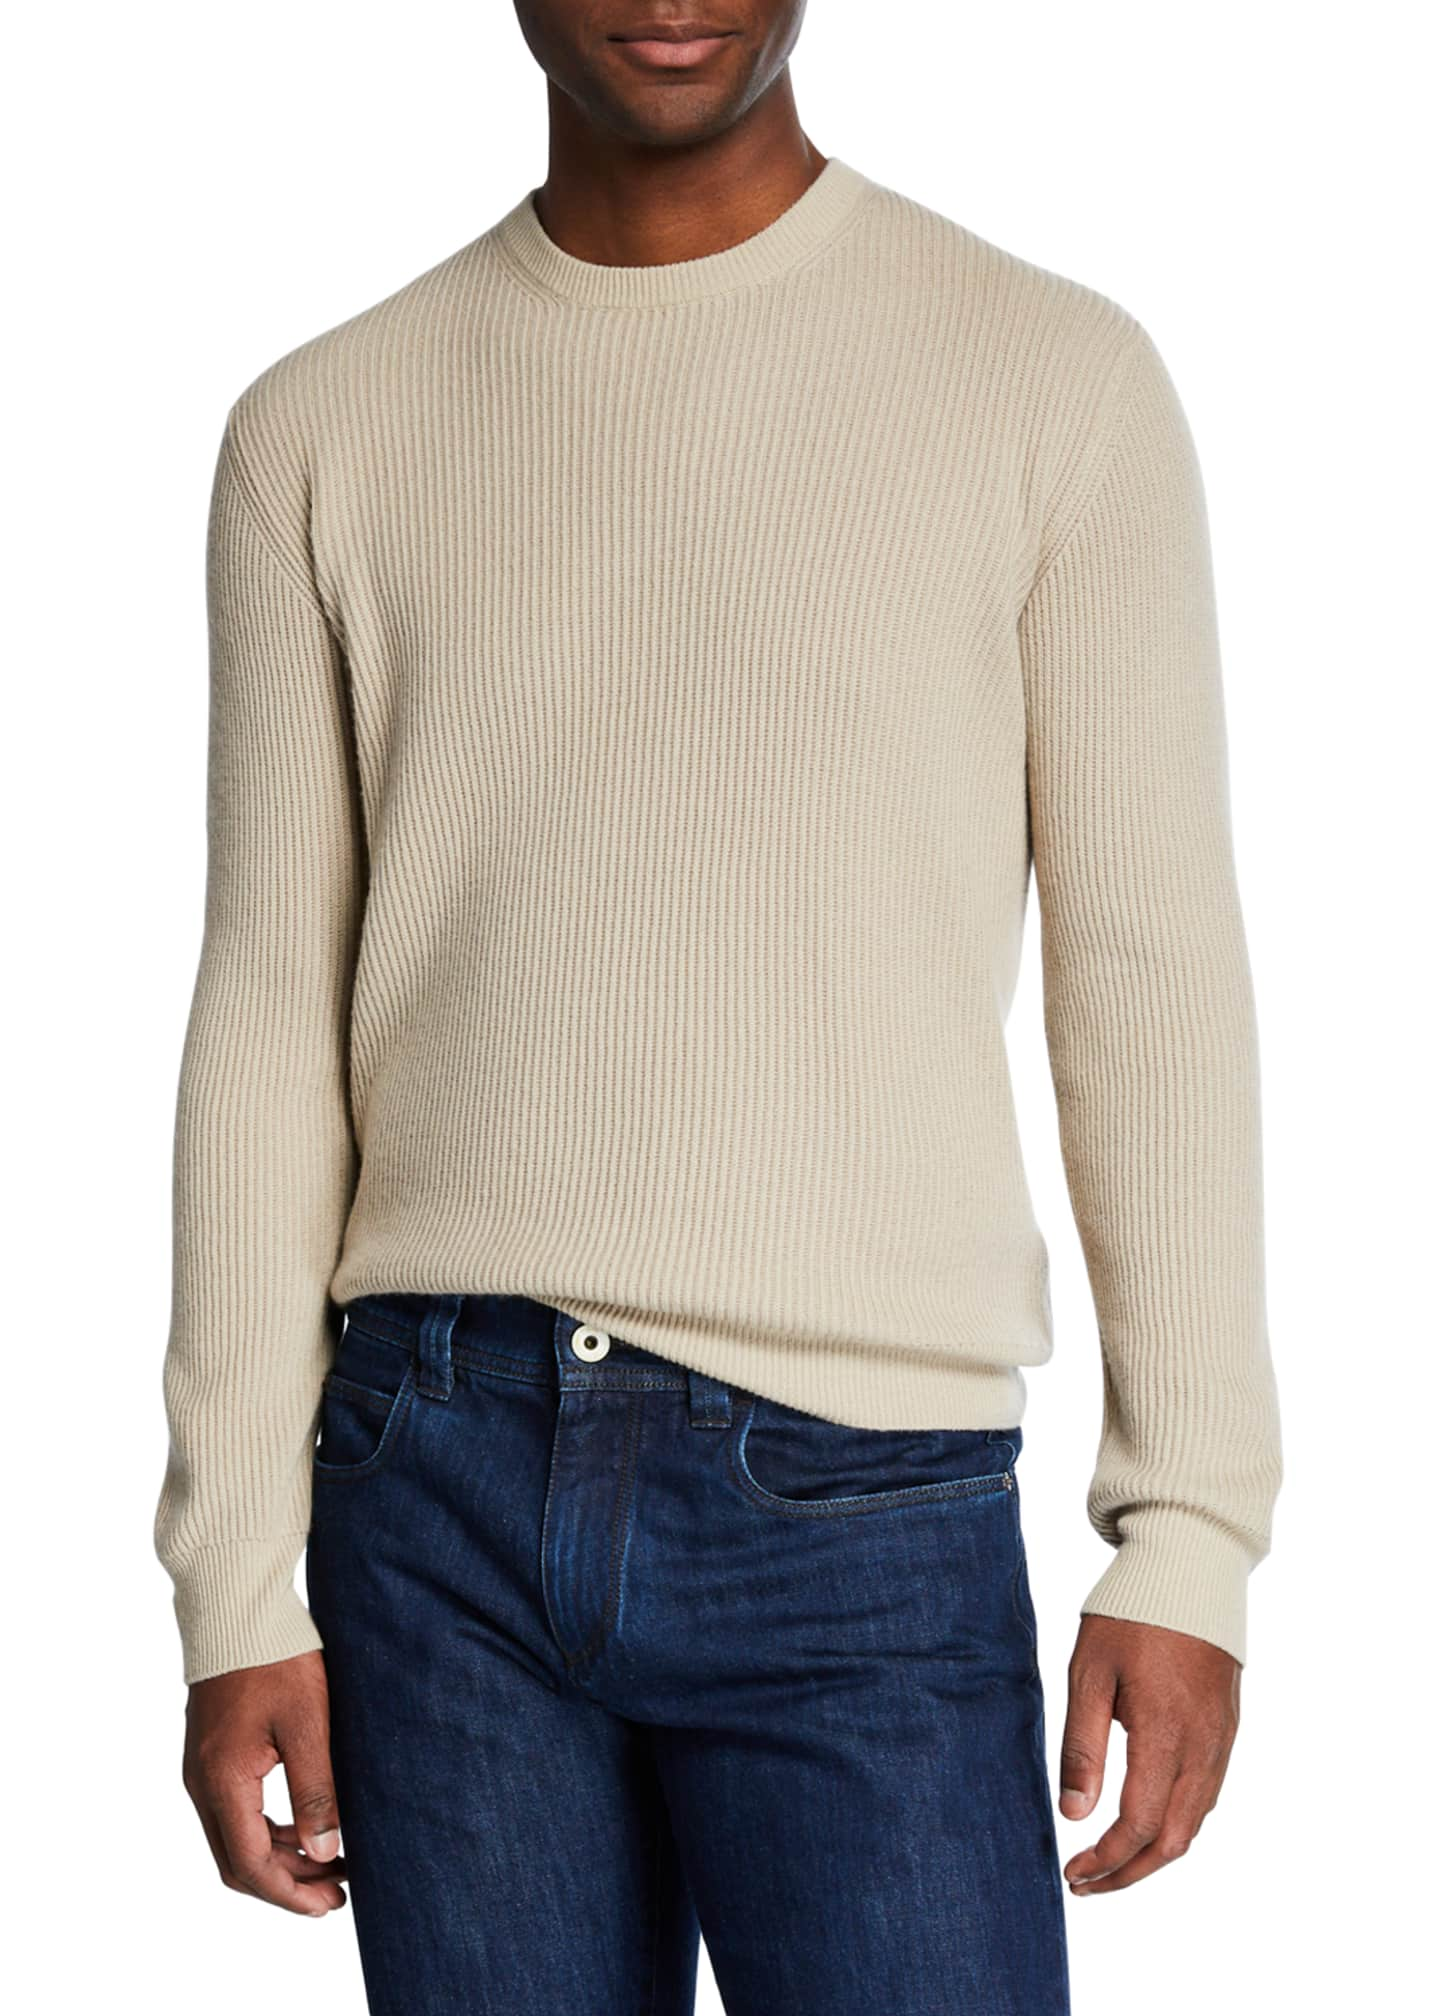 Loro Piana Men's Girocollo Cash York Ribbed Sweater